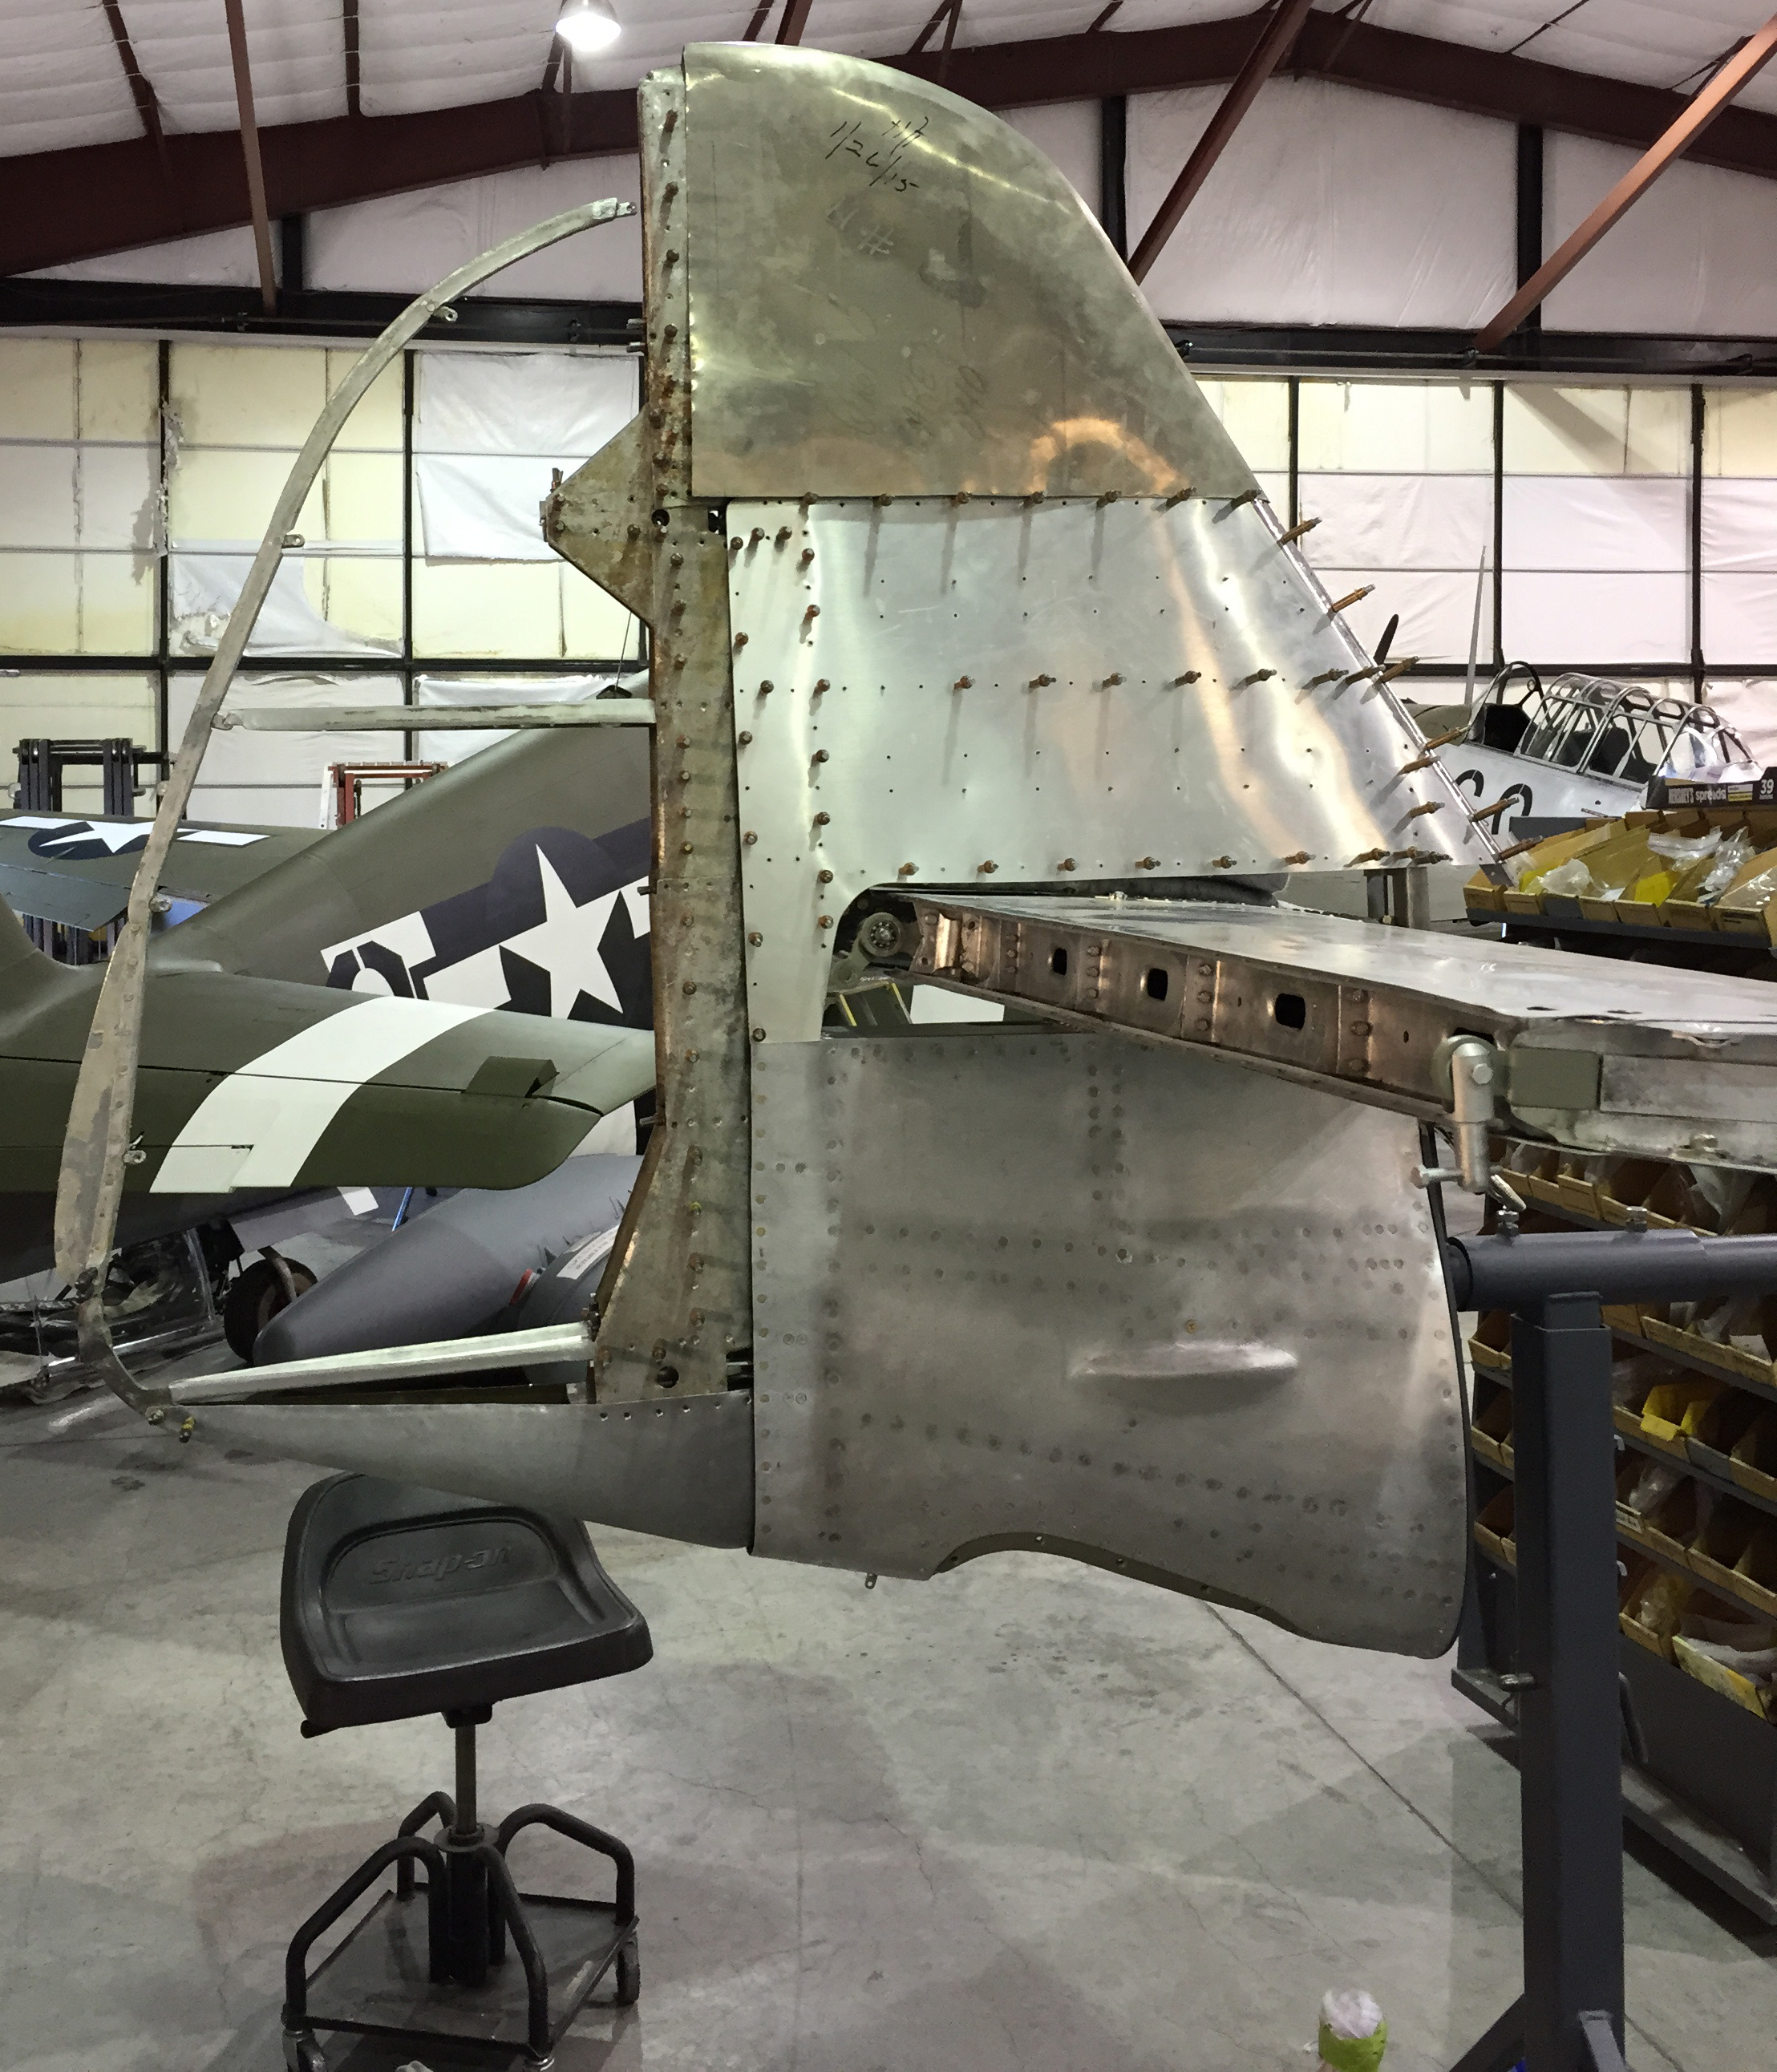 The rudder and vertical stabilizer coming together at Pacific Fighters. The rudder leading edge and counterweights shown here are from a French crash site and being used as patterns, alongside original German blueprints, to recreate the proper G-10 tail assemblies. (photo via Pacific Fighters)